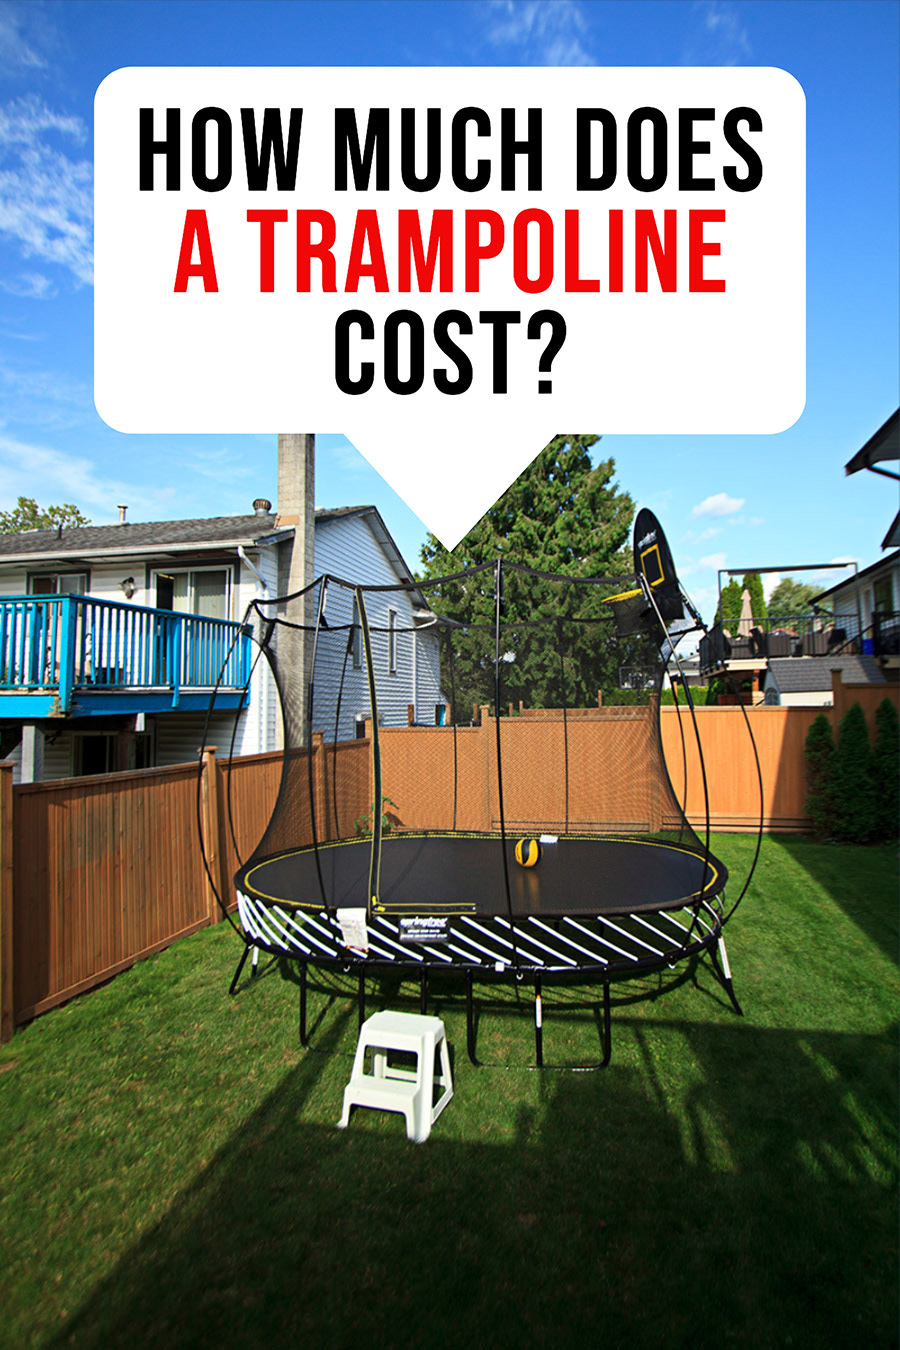 How much does a trampoline cost to buy